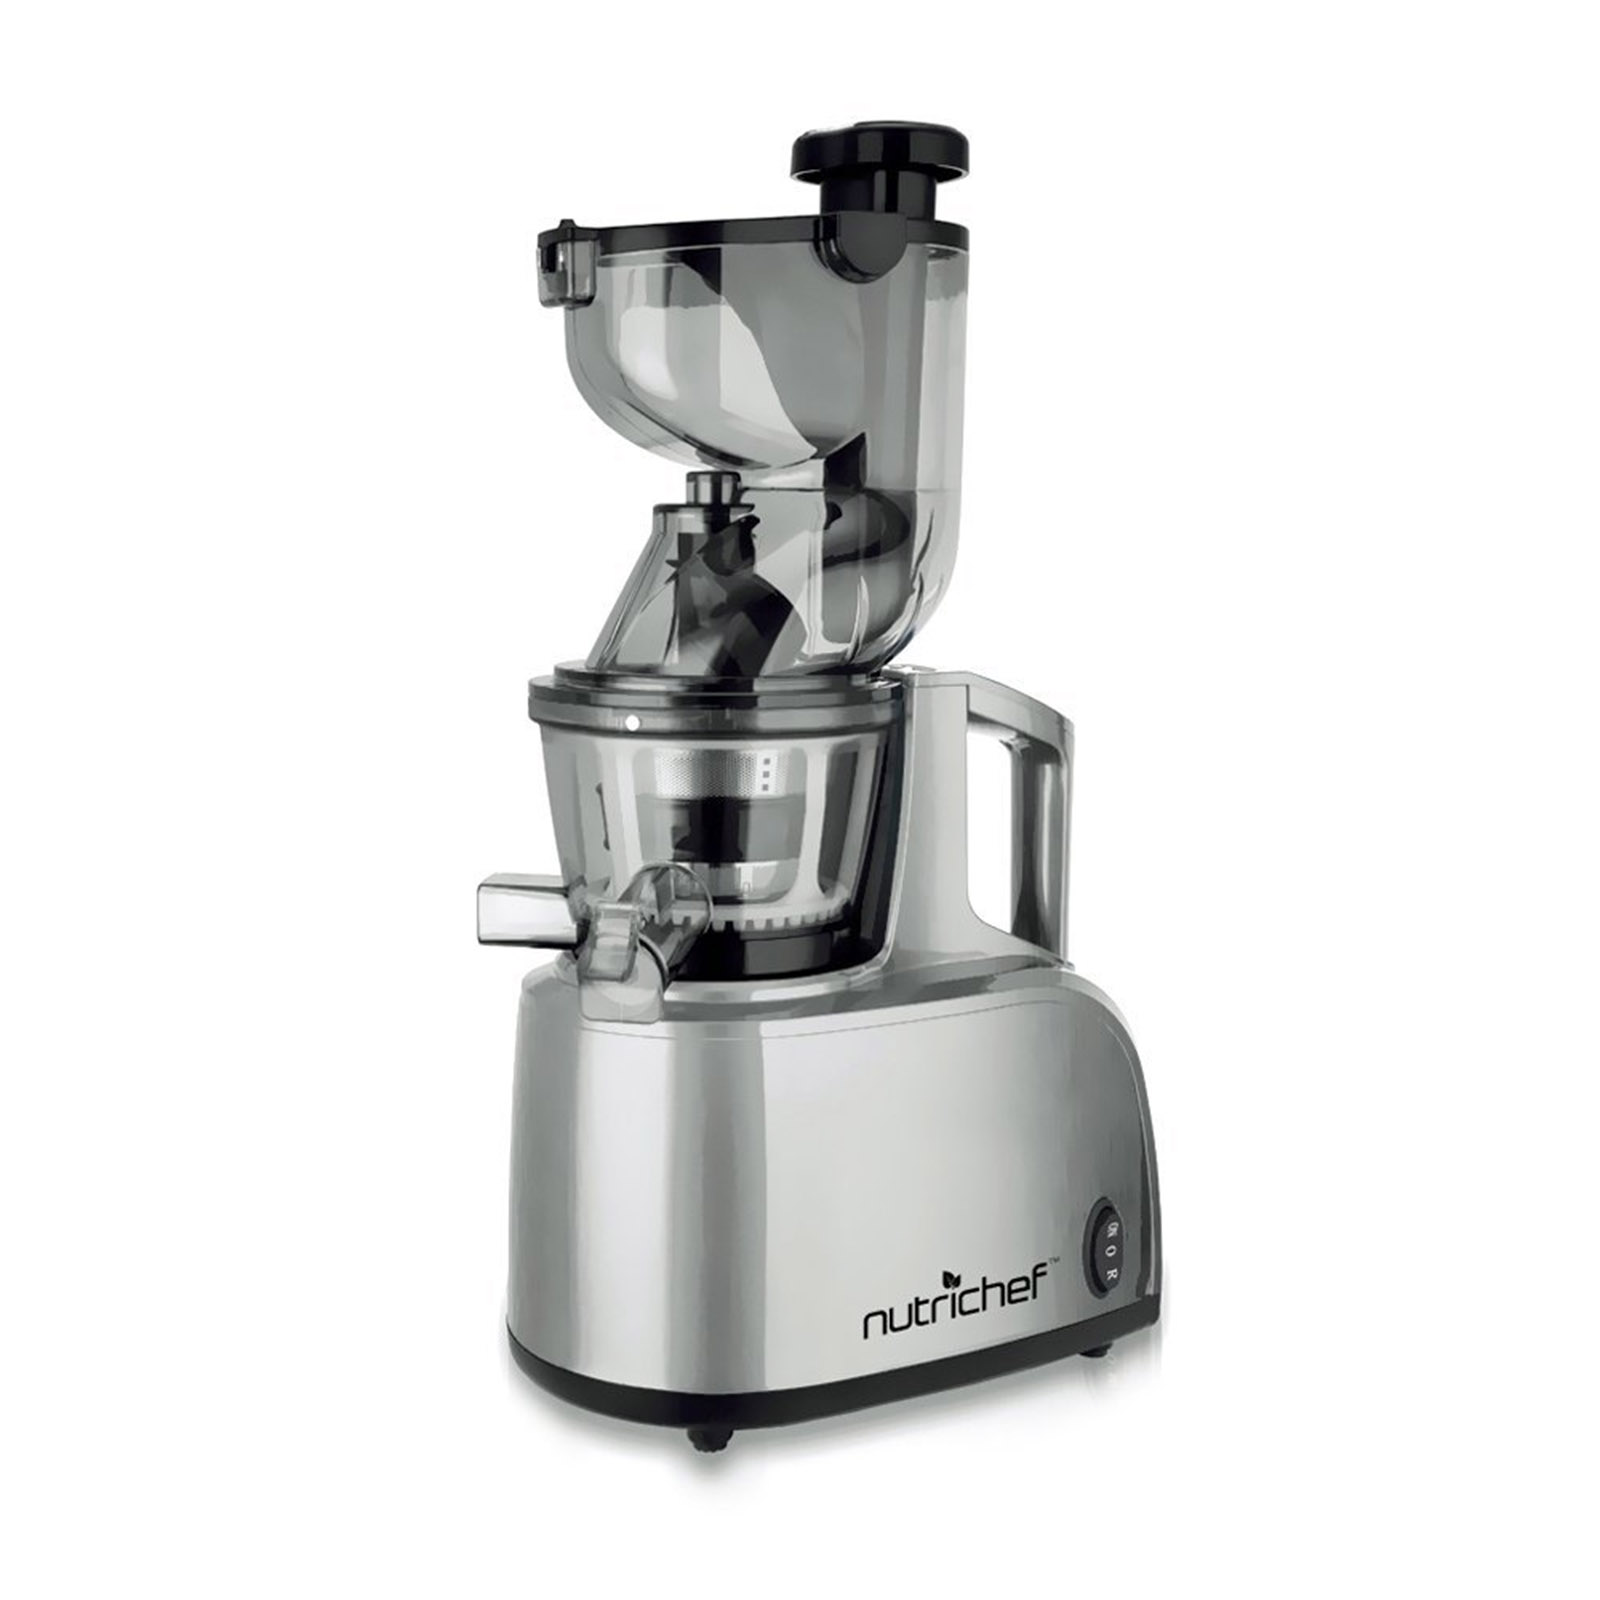 NutriChef Countertop Masticating Slow Juicer / Juice & Dr...